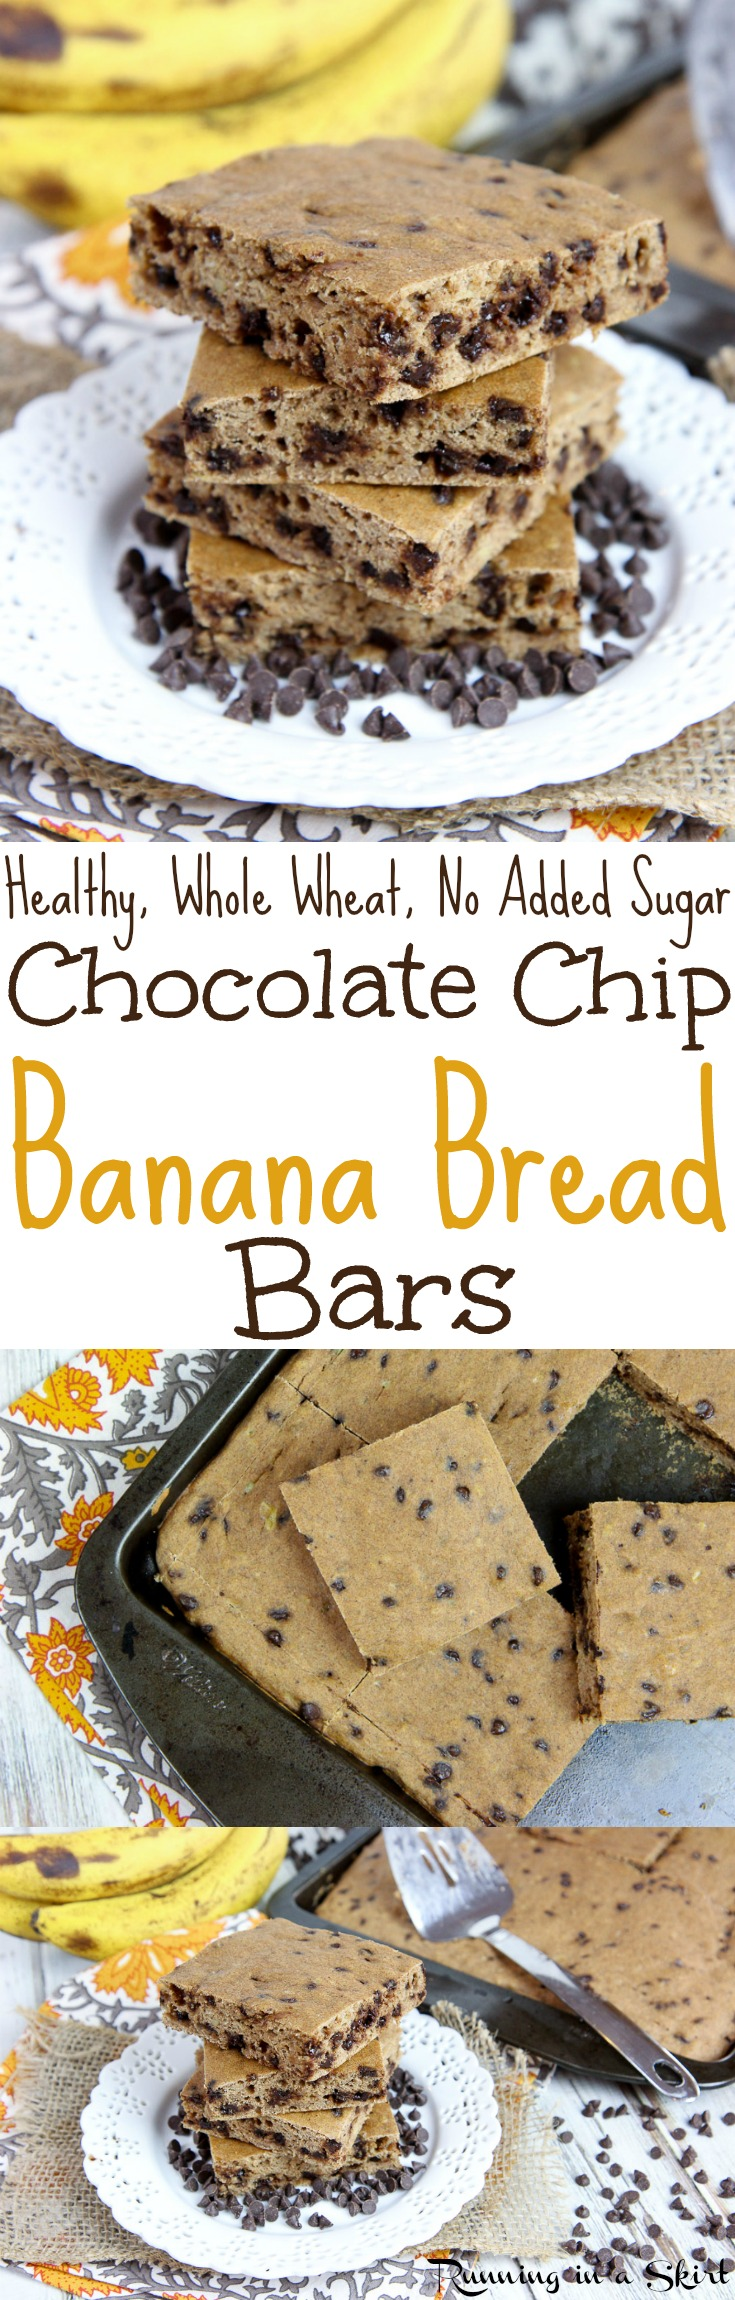 The Best Healthy Chocolate Chip Banana Bread Bars recipe - an easy, simple recipe for desserts or snacks... the perfect sweet treats!  Dairy free & added sugar free. / Running in a Skirt via @juliewunder